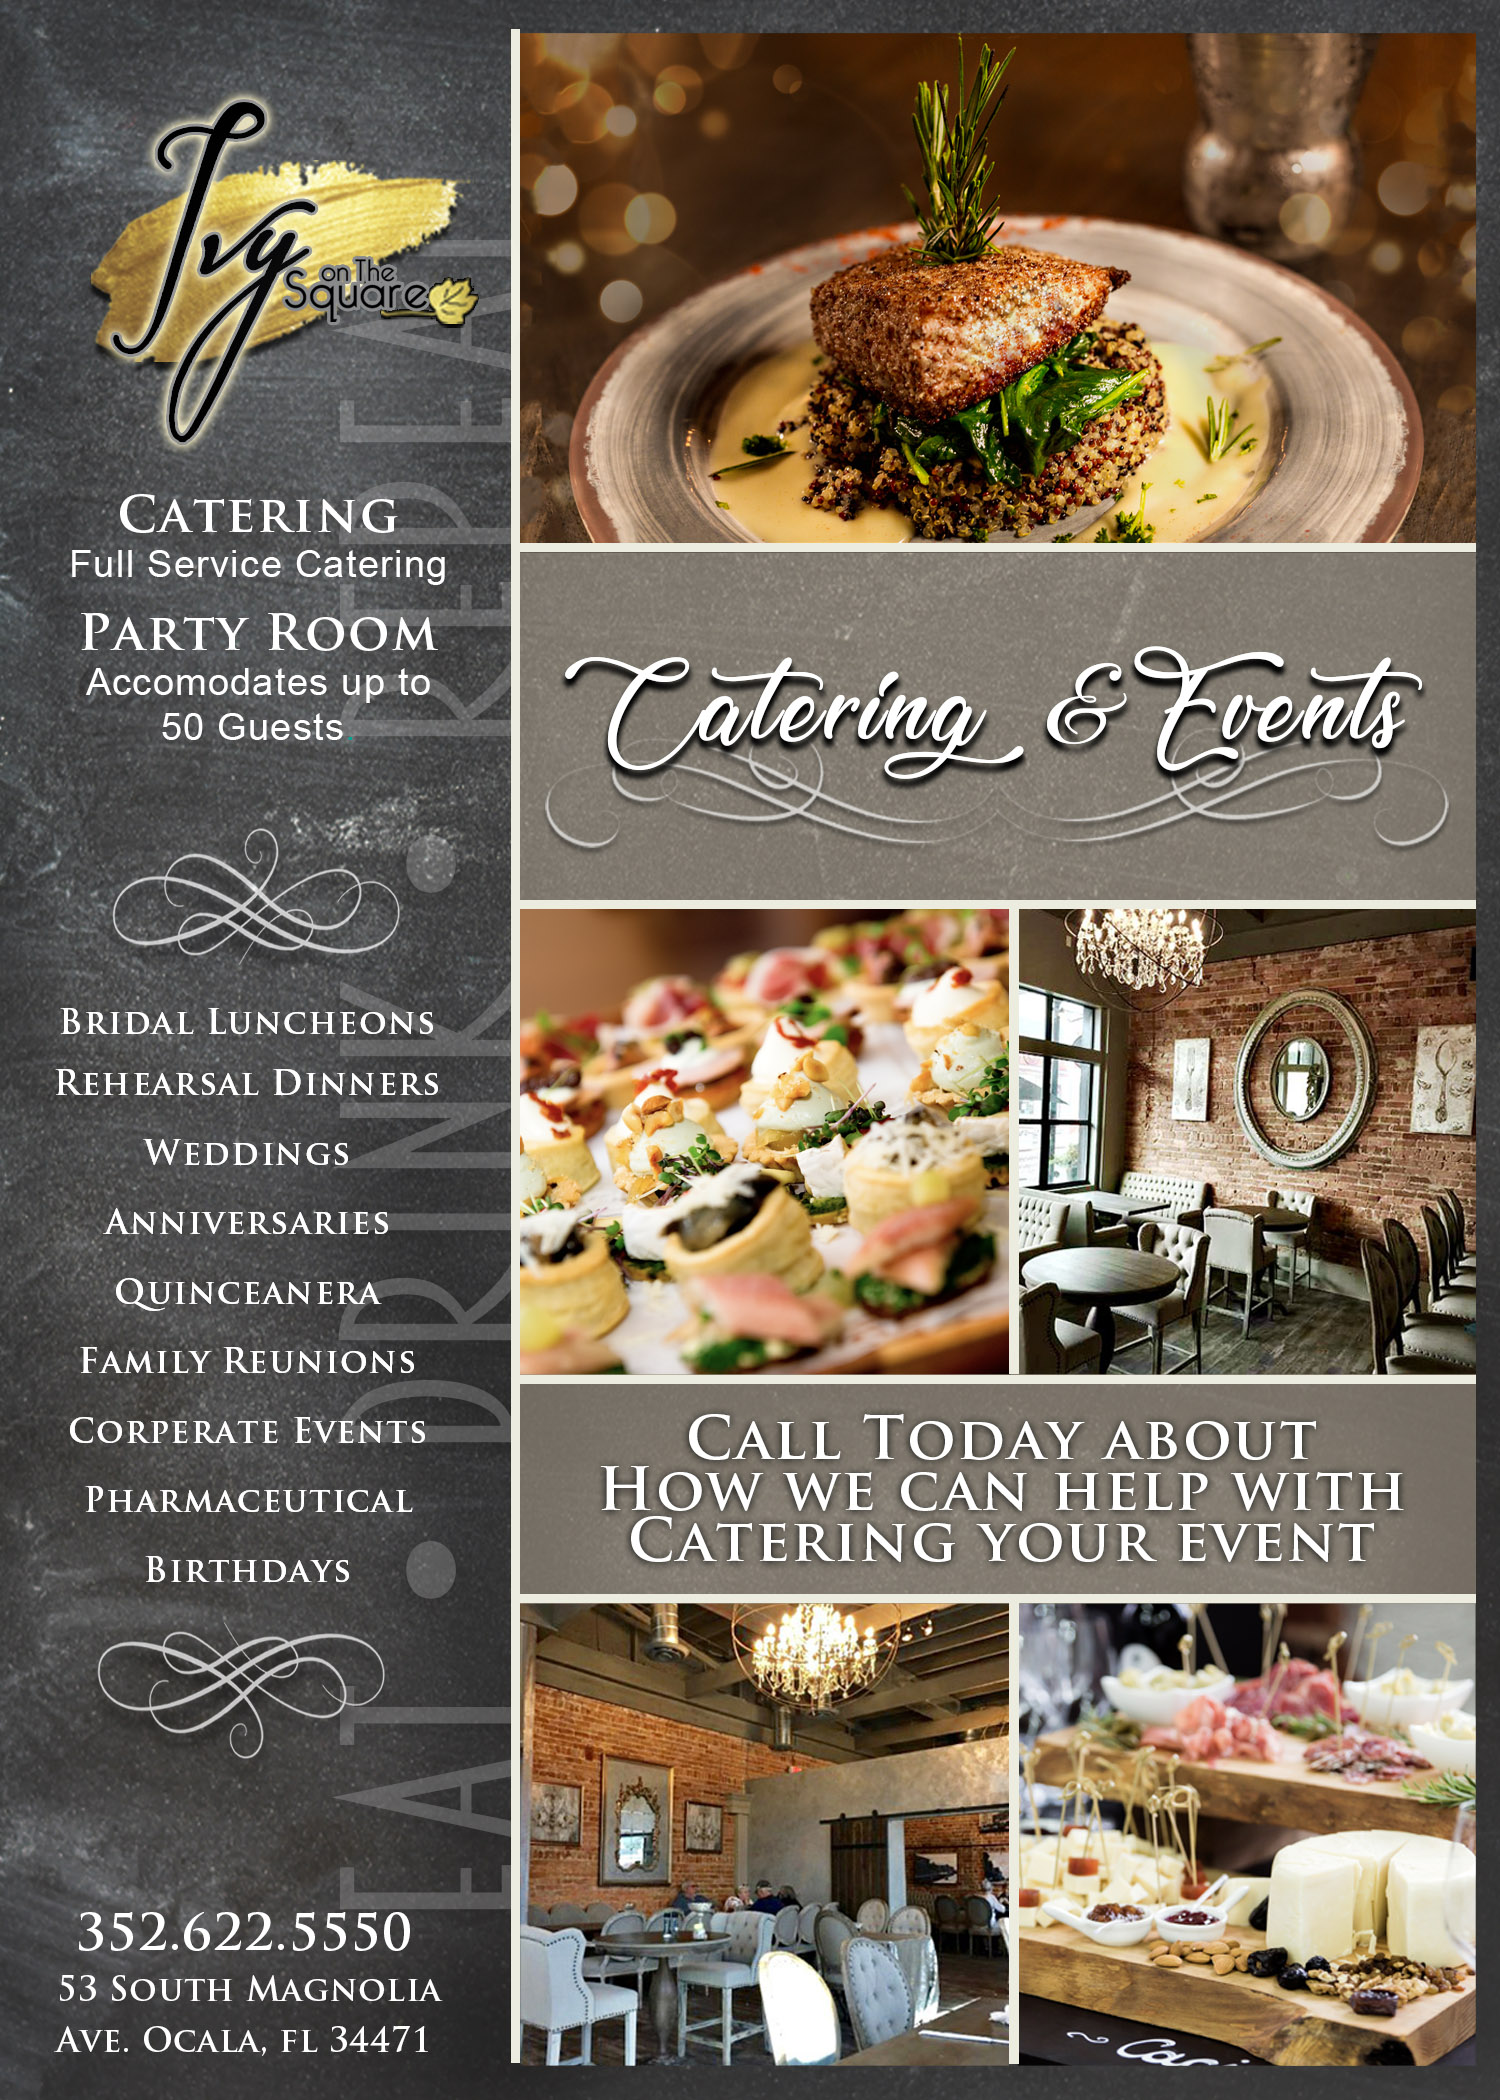 Ivy catering events 2019 AD.jpg